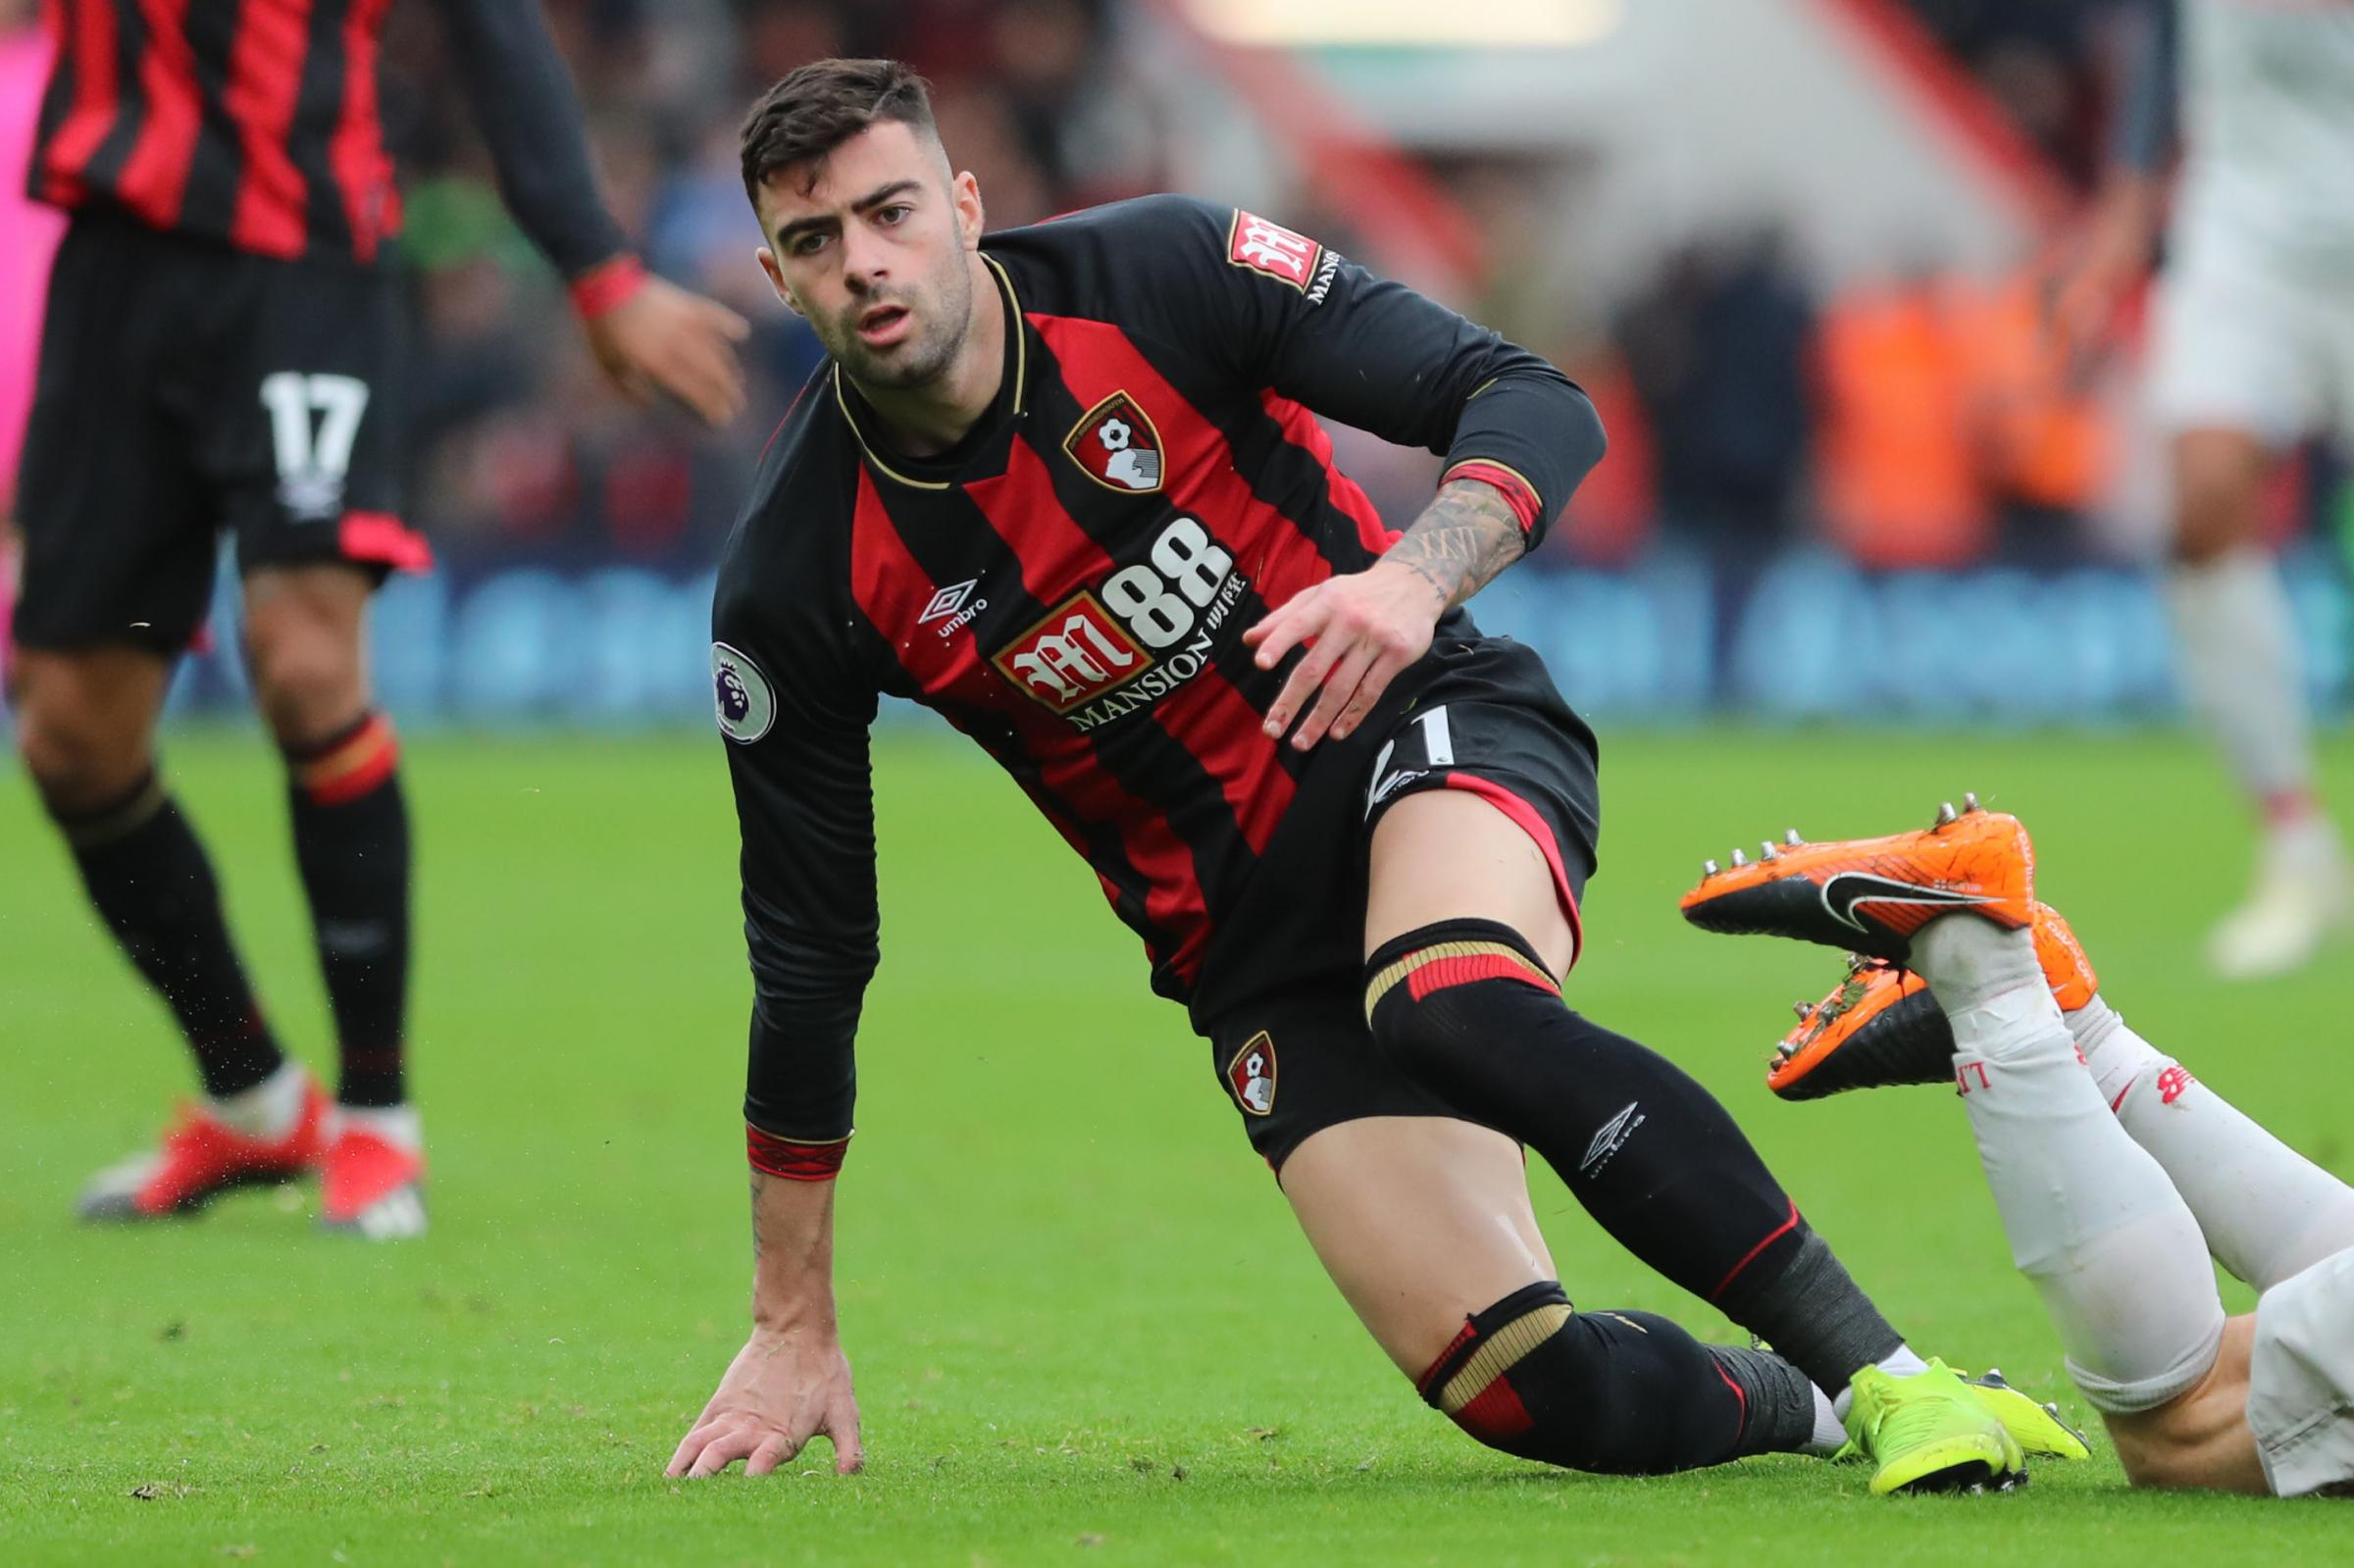 Rico admits it has 'taken some time' to adapt to life at AFC Bournemouth